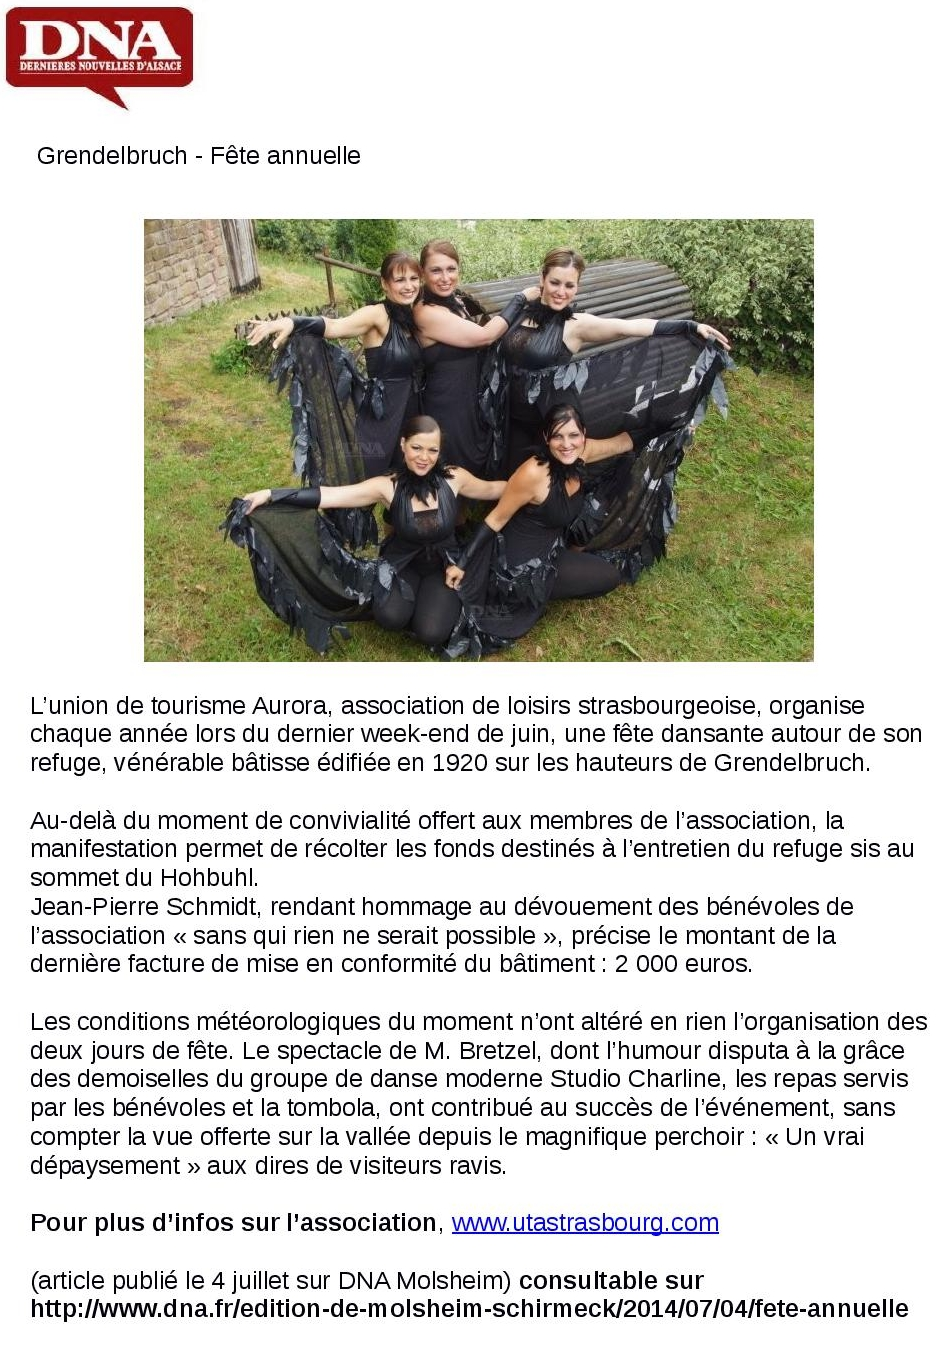 Dna alsace article page 2